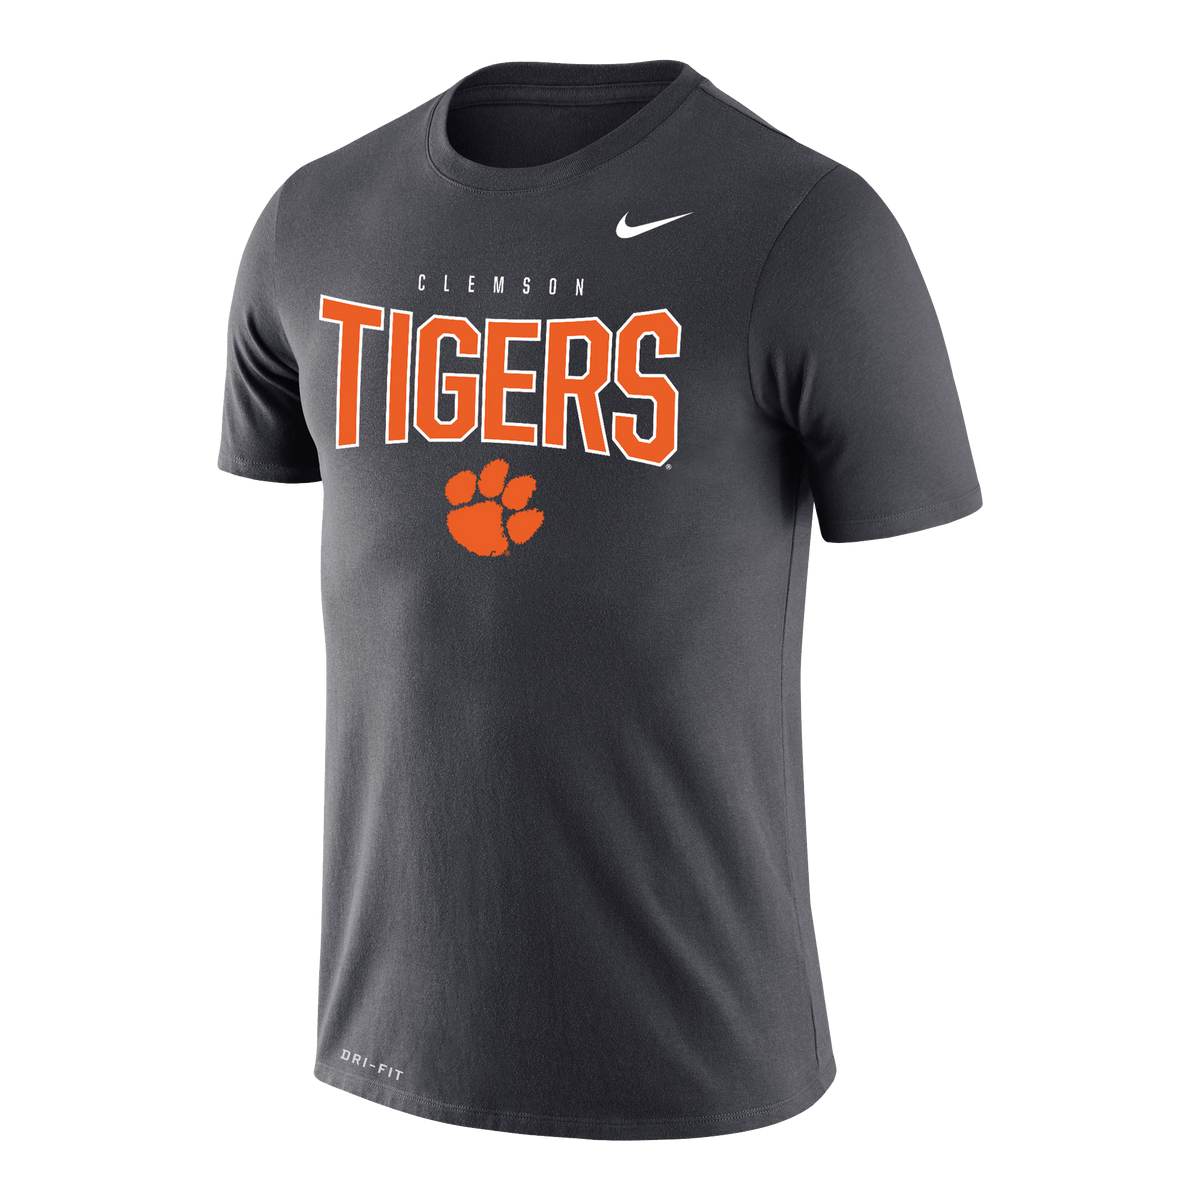 Nike Dri-fit Cotton Tee Clemson Tigers